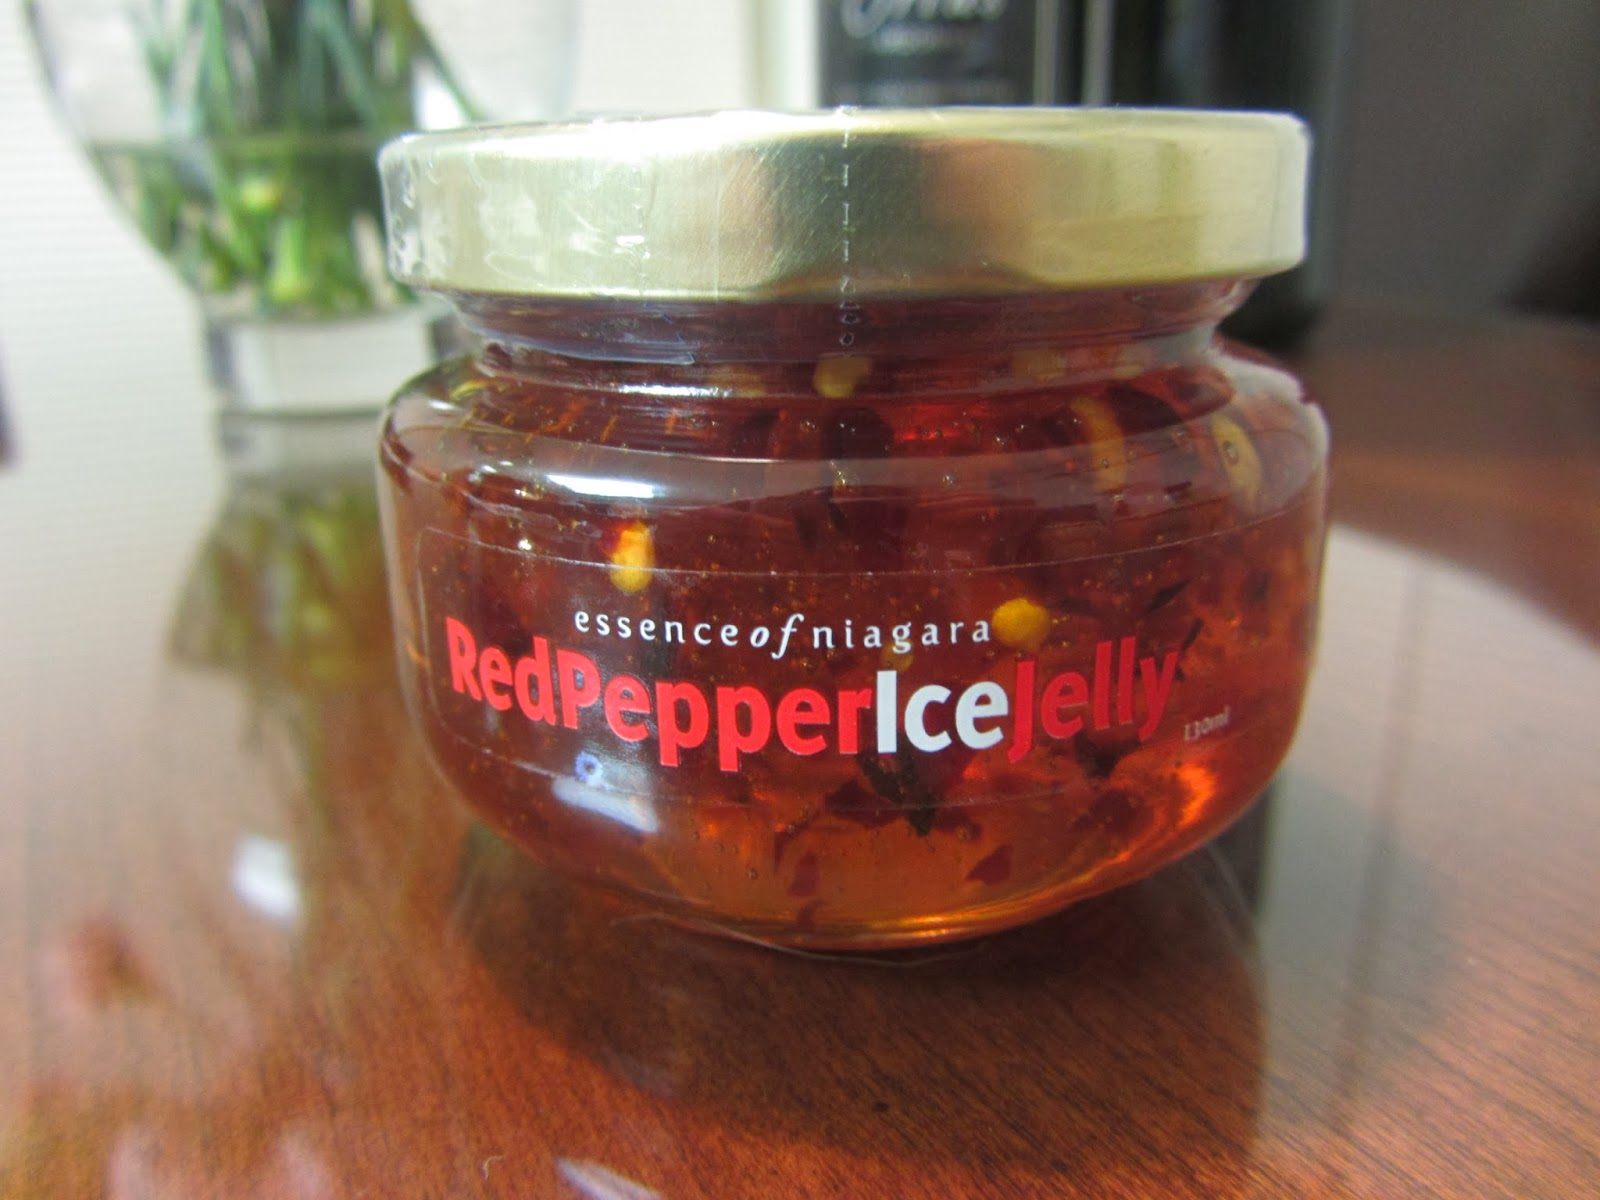 Red pepper icewine jelly